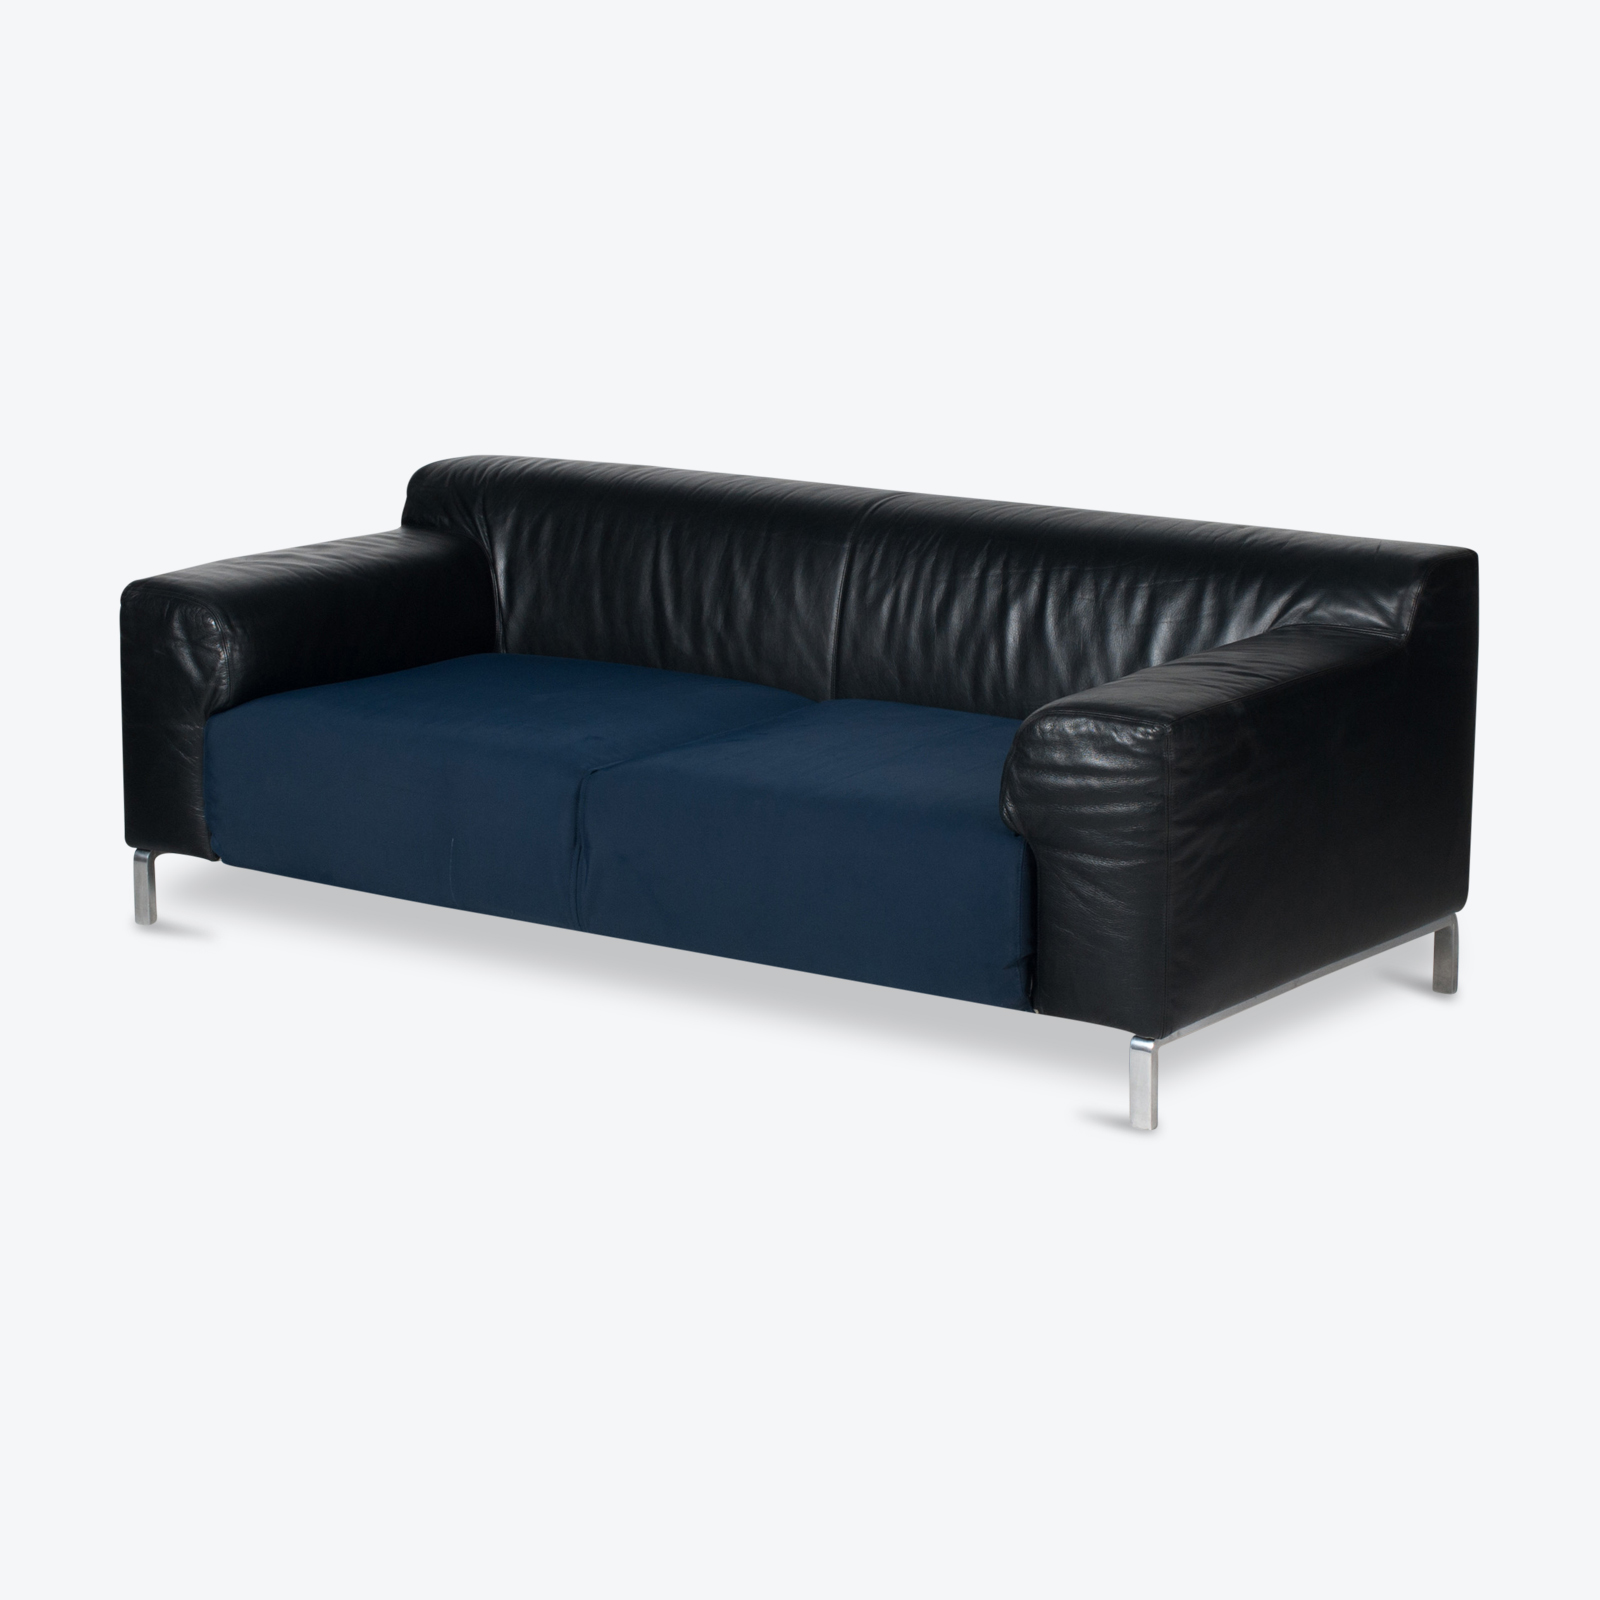 Model Greg 2 Seat Sofa By E. Progetti With Back Upholstered In Black Leather And Seat In Blue Fabric With Chrome Legs, 1960s, Italy Hero